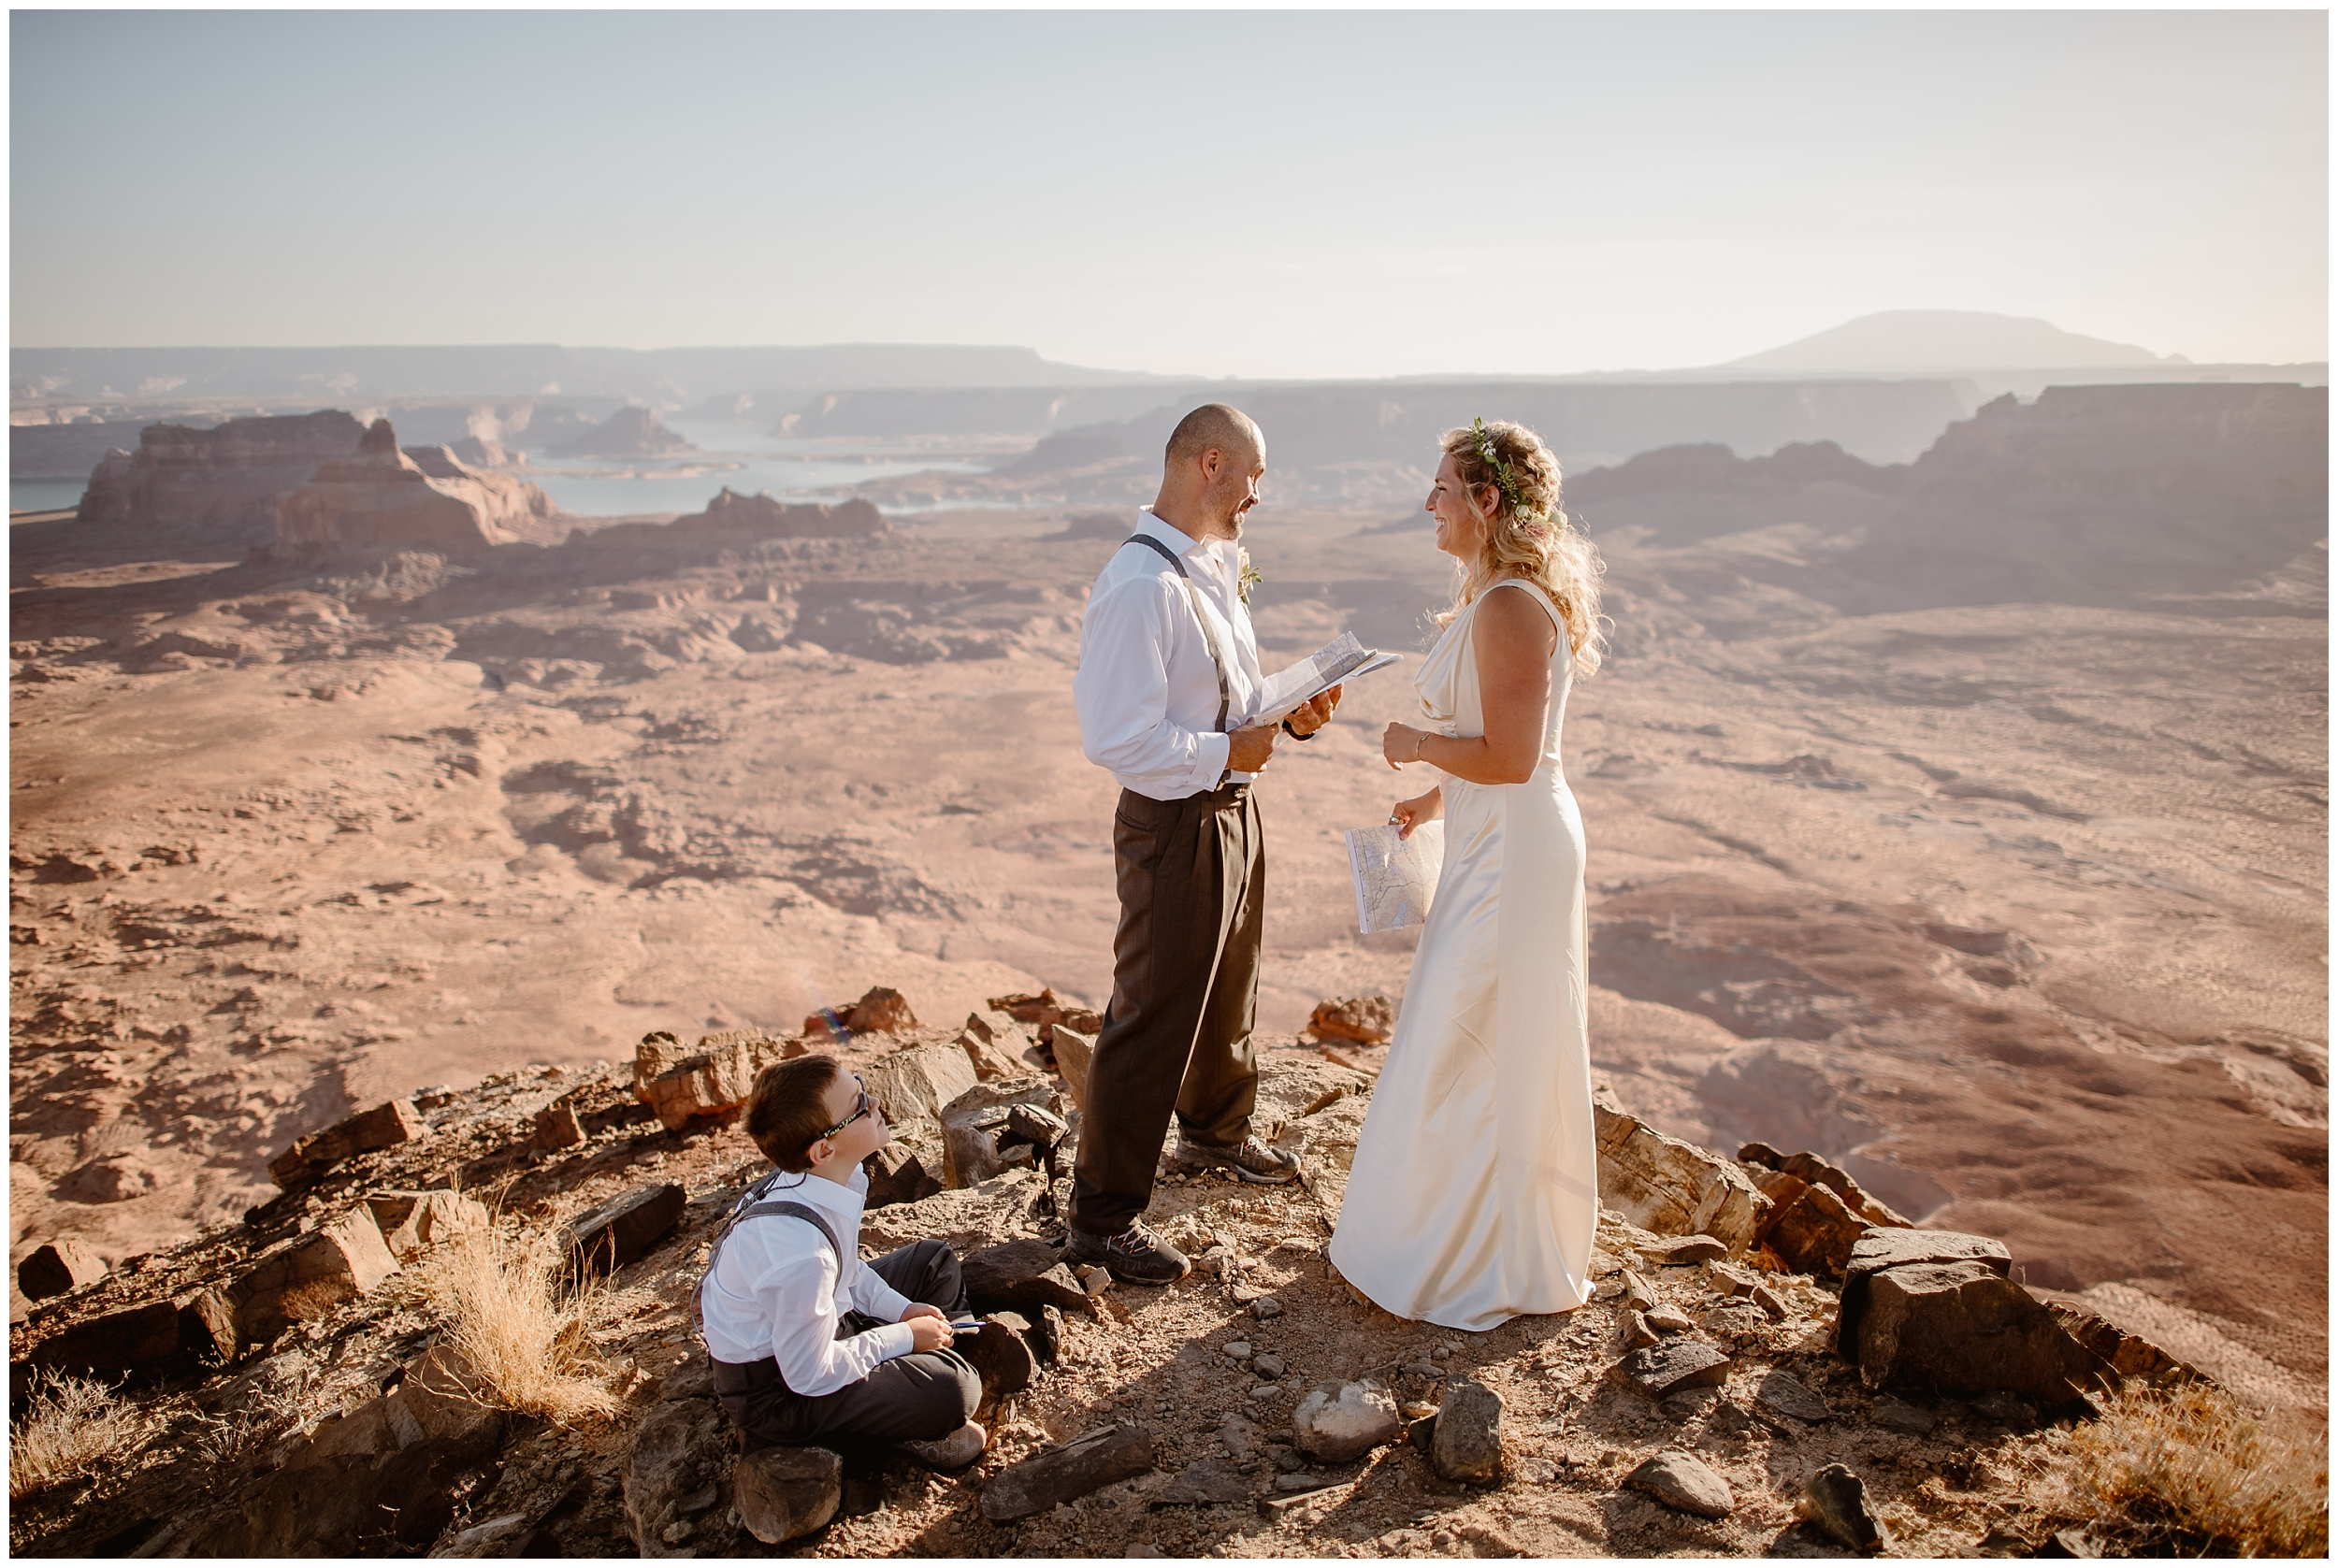 A young boy sits at his parents' feet at the top of a canyon in the Southwest as they read their vows during their elopement ceremony. These adventure elopement pictures were captured by elopement wedding photographer Adventure Instead.